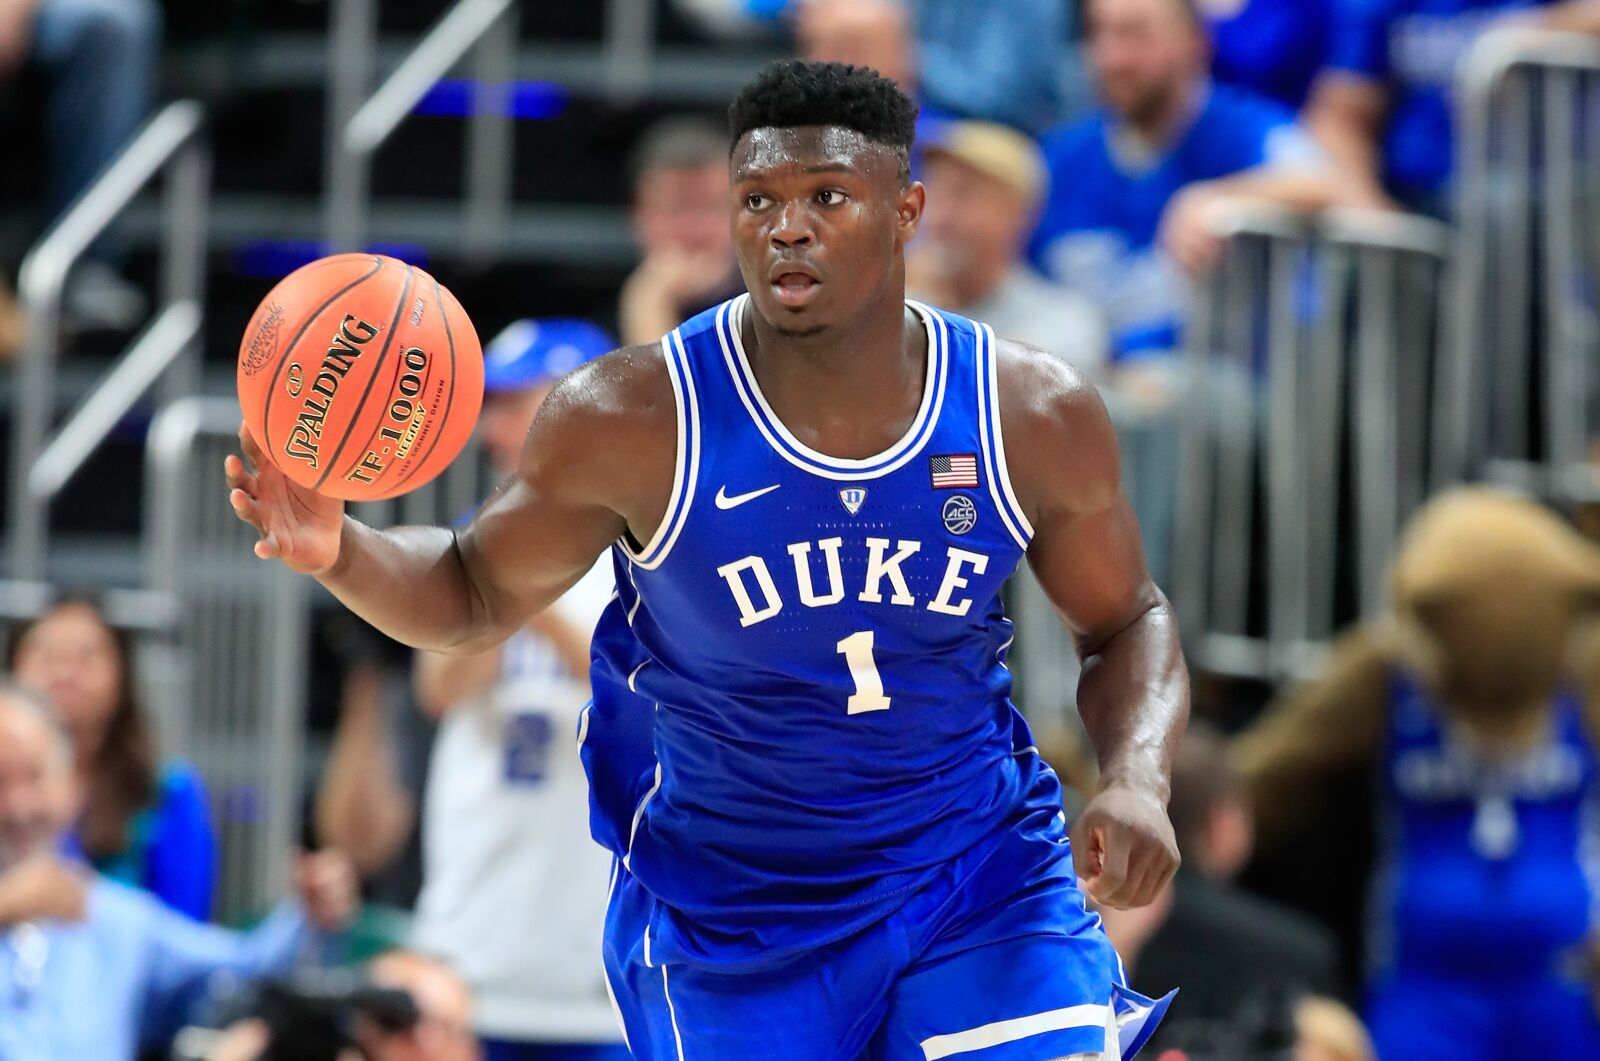 Duke Basketball: Zion might be the most popular Blue Devil ever